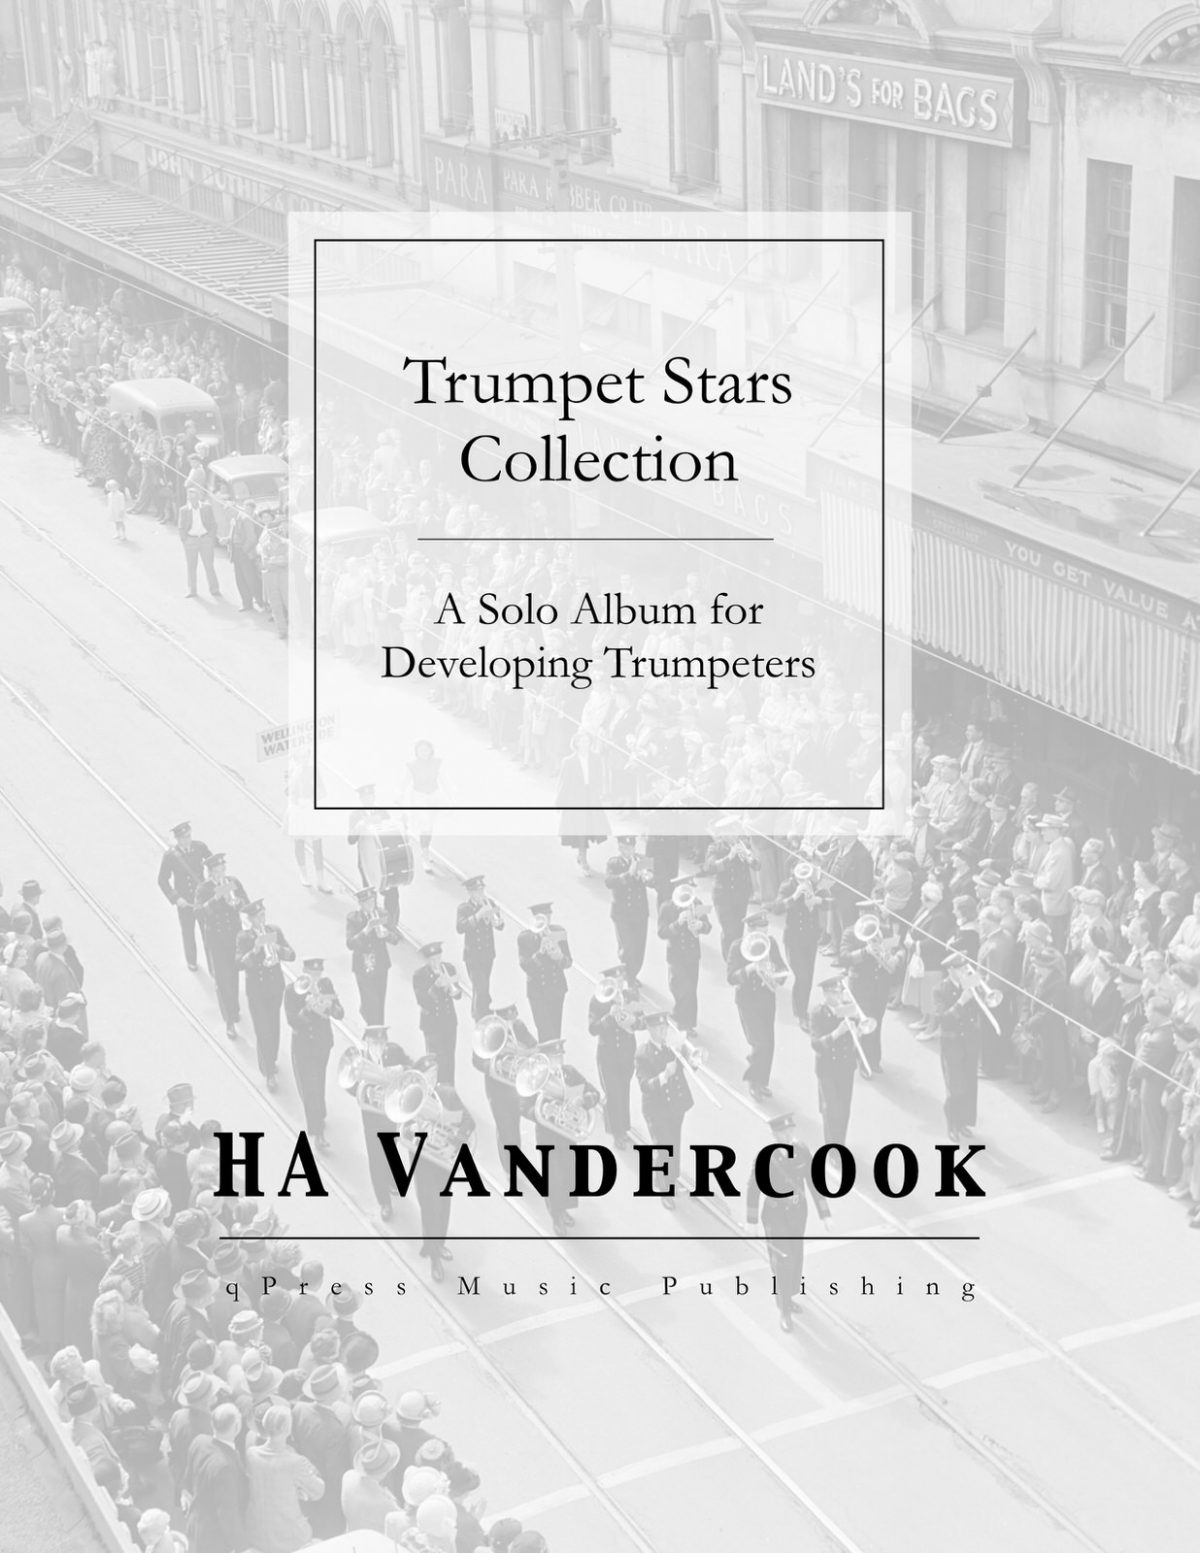 Trumpet Stars Featured Image